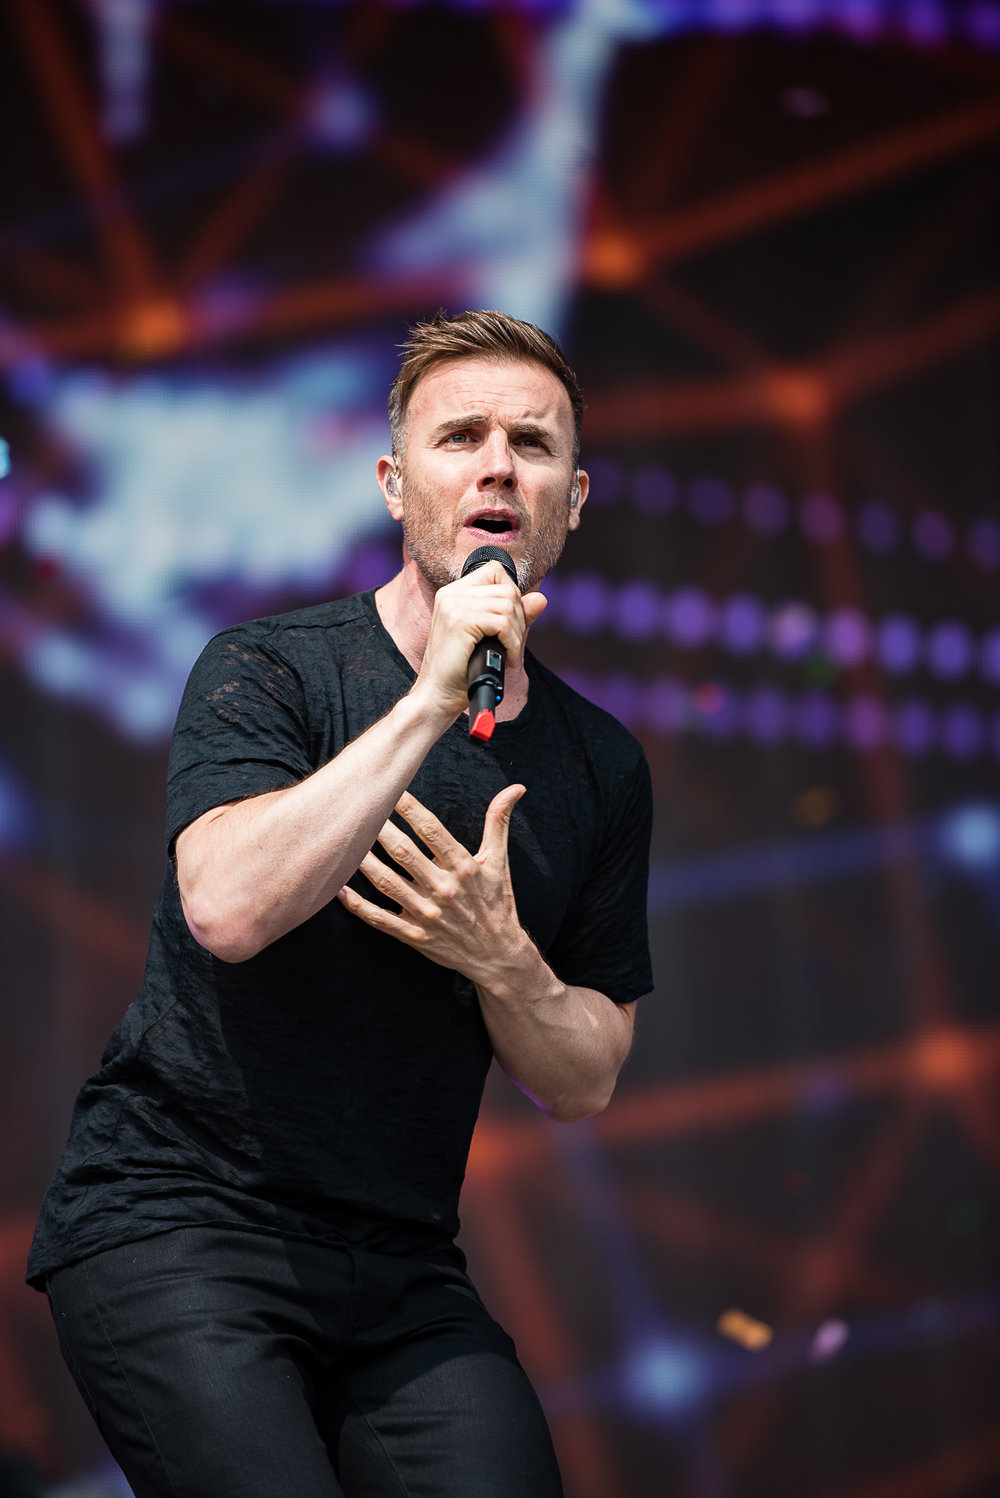 Gary Barlow at Radio One Big Weekend.